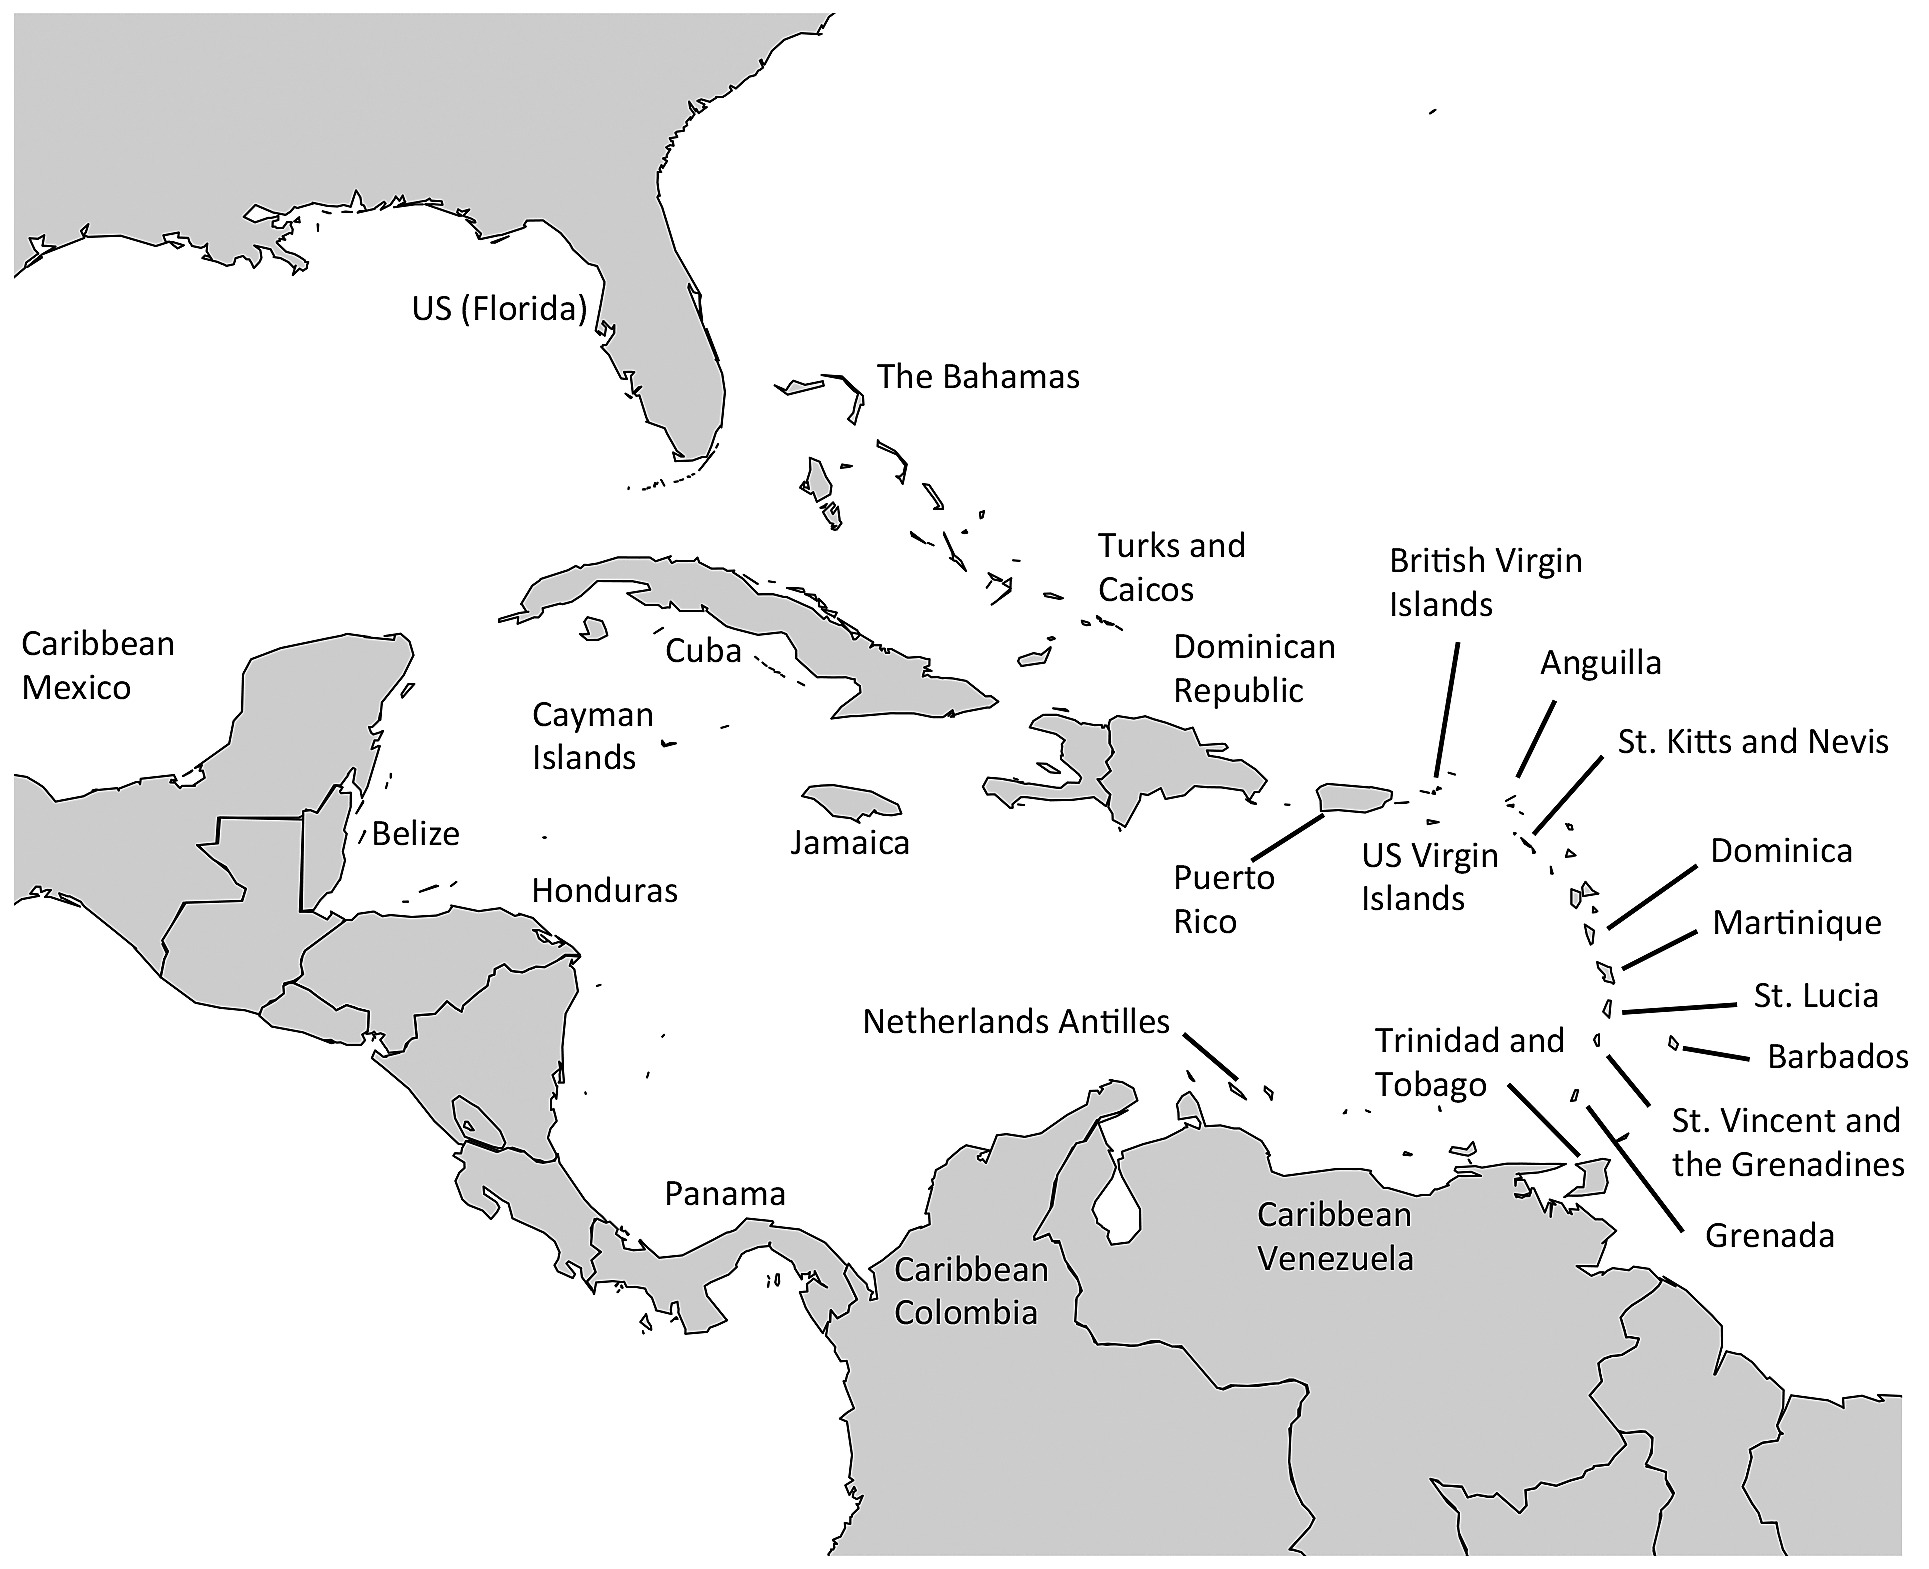 Map Of The Caribbean Region Map of the Wider Caribbean Region with 25 countries/island nations